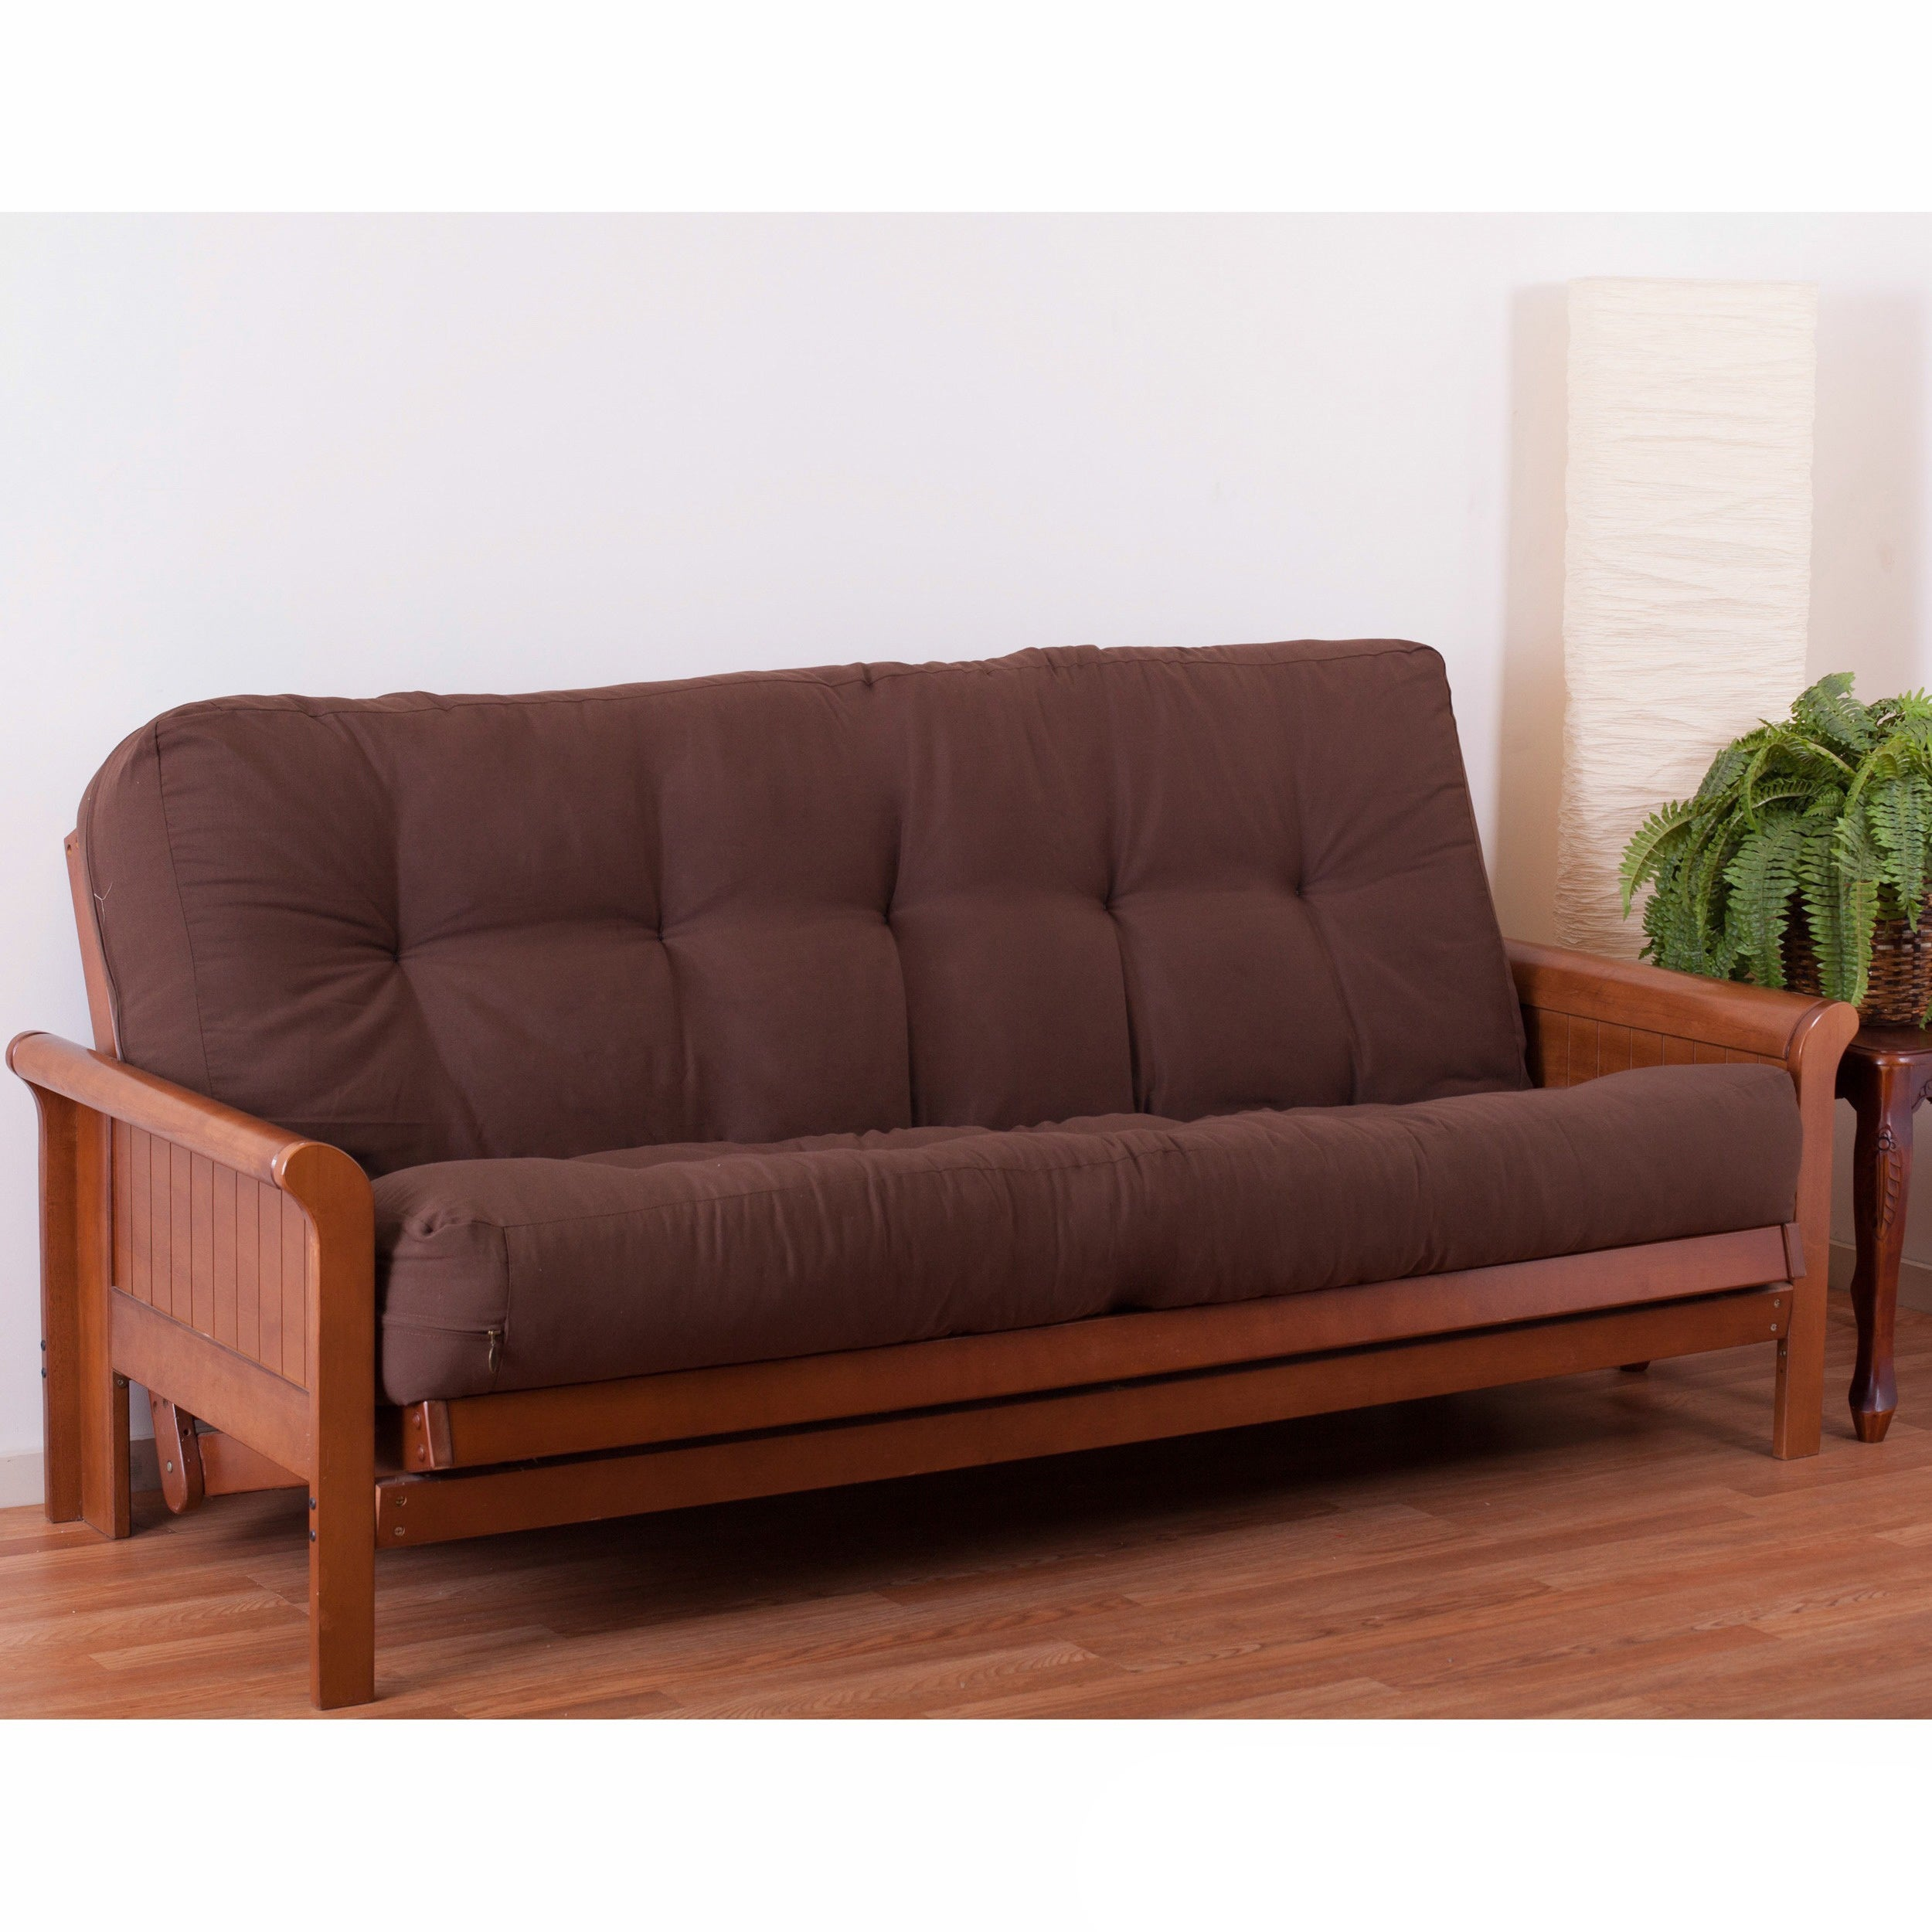 Astonishing Buy Futons Online At Overstock Our Best Living Room Machost Co Dining Chair Design Ideas Machostcouk